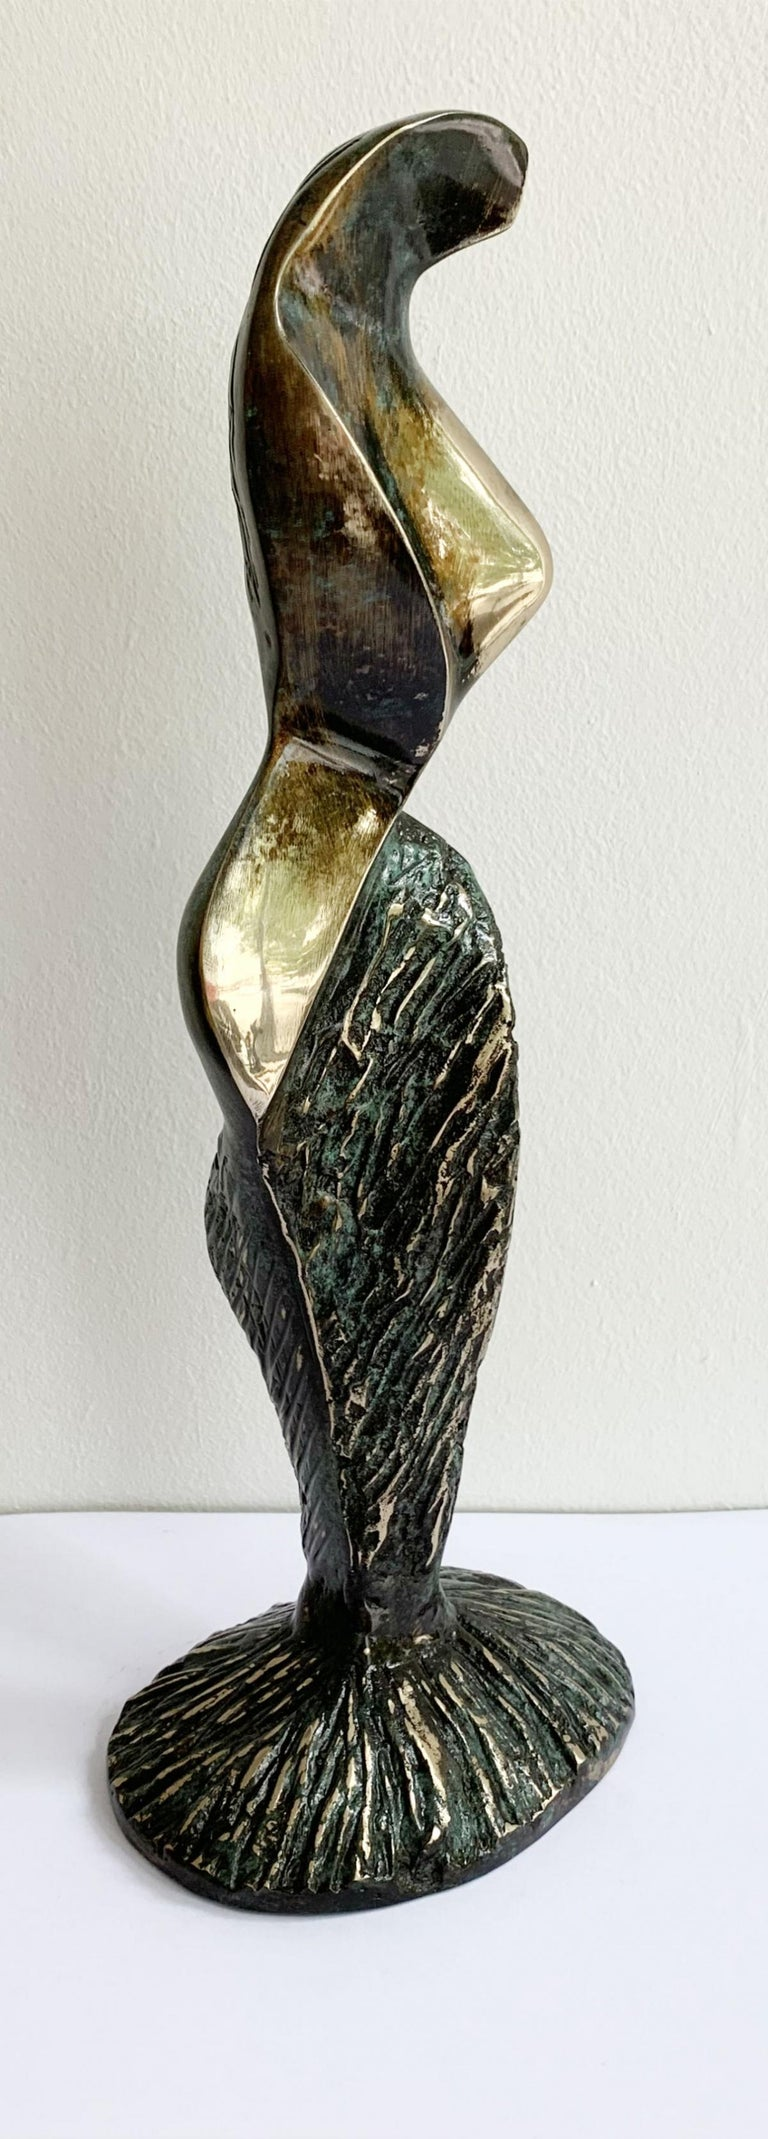 Dame VIII - XXI century Contemporary bronze sculpture, Abstract & figurative - Sculpture by Stanisław Wysocki